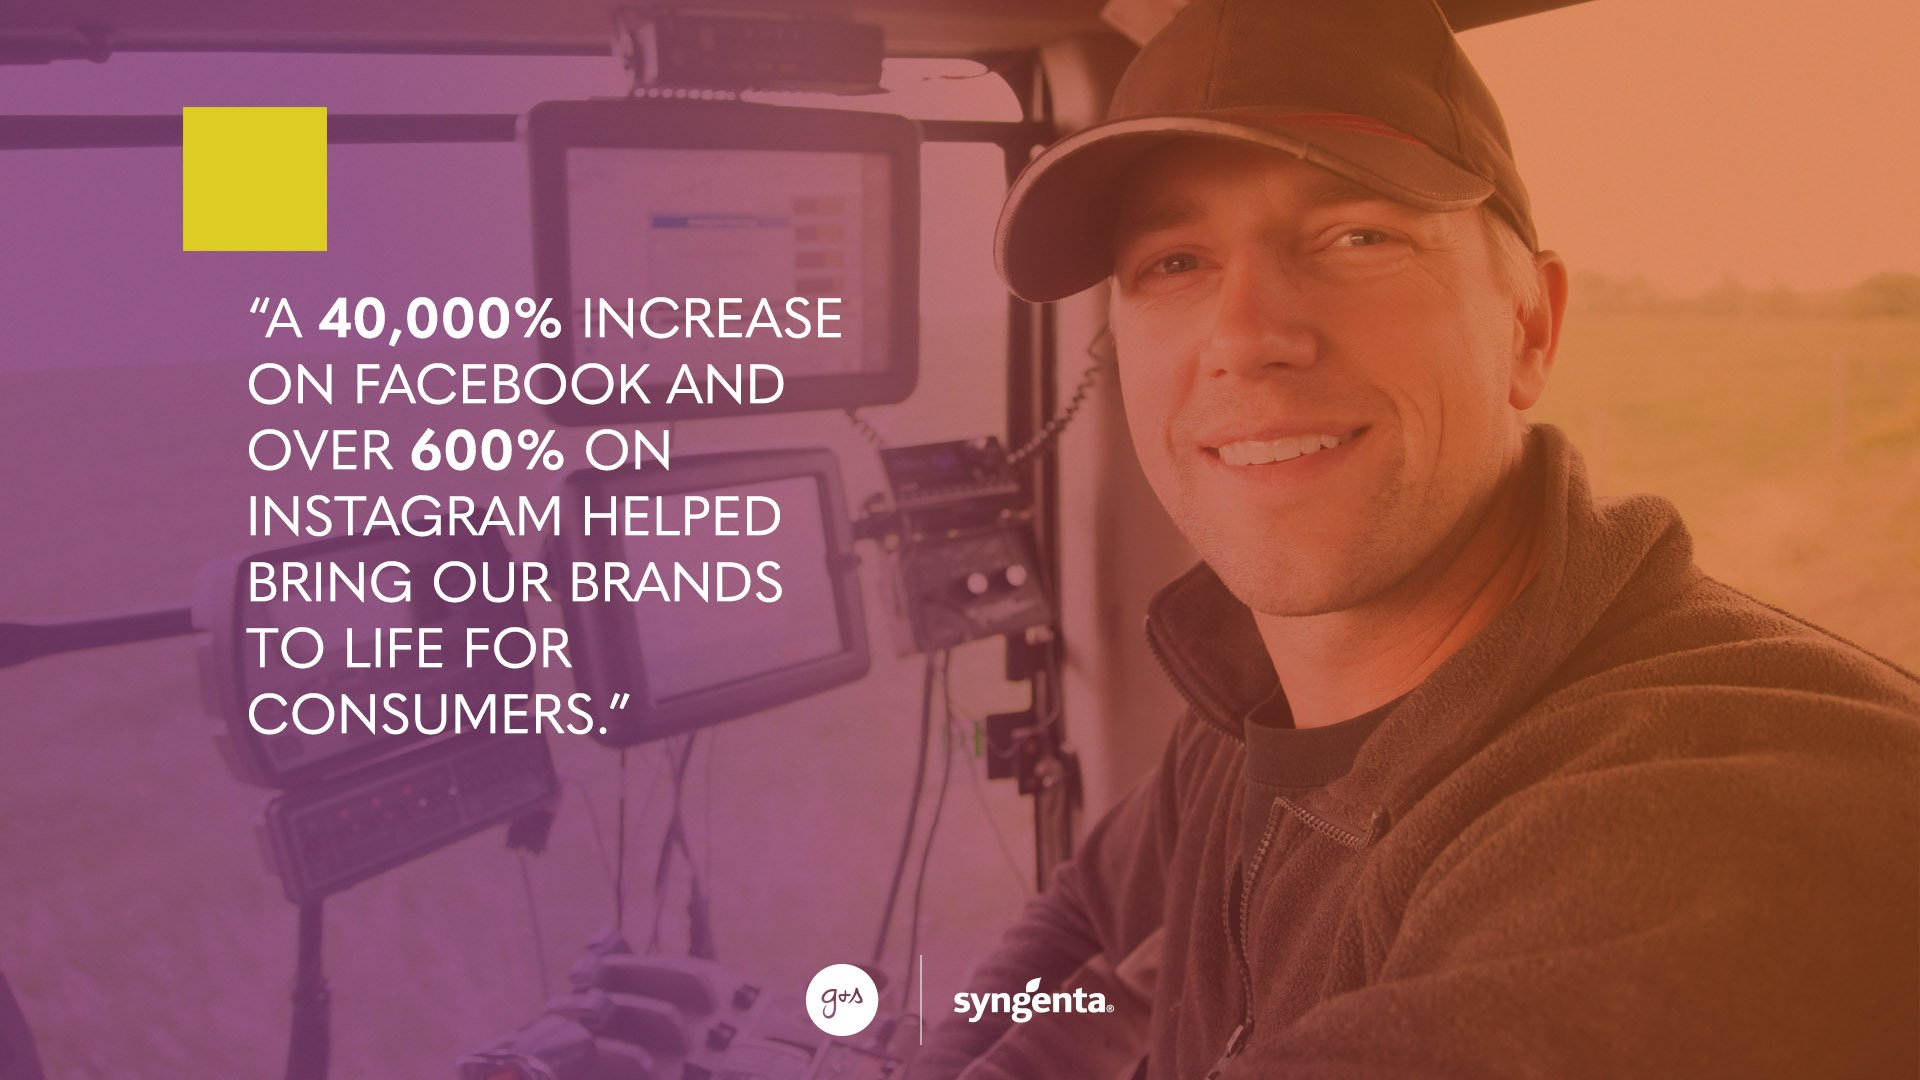 Syngenta_Digital Transformation_Weeds Waking Up_Social Quote_Increase on FB_IG